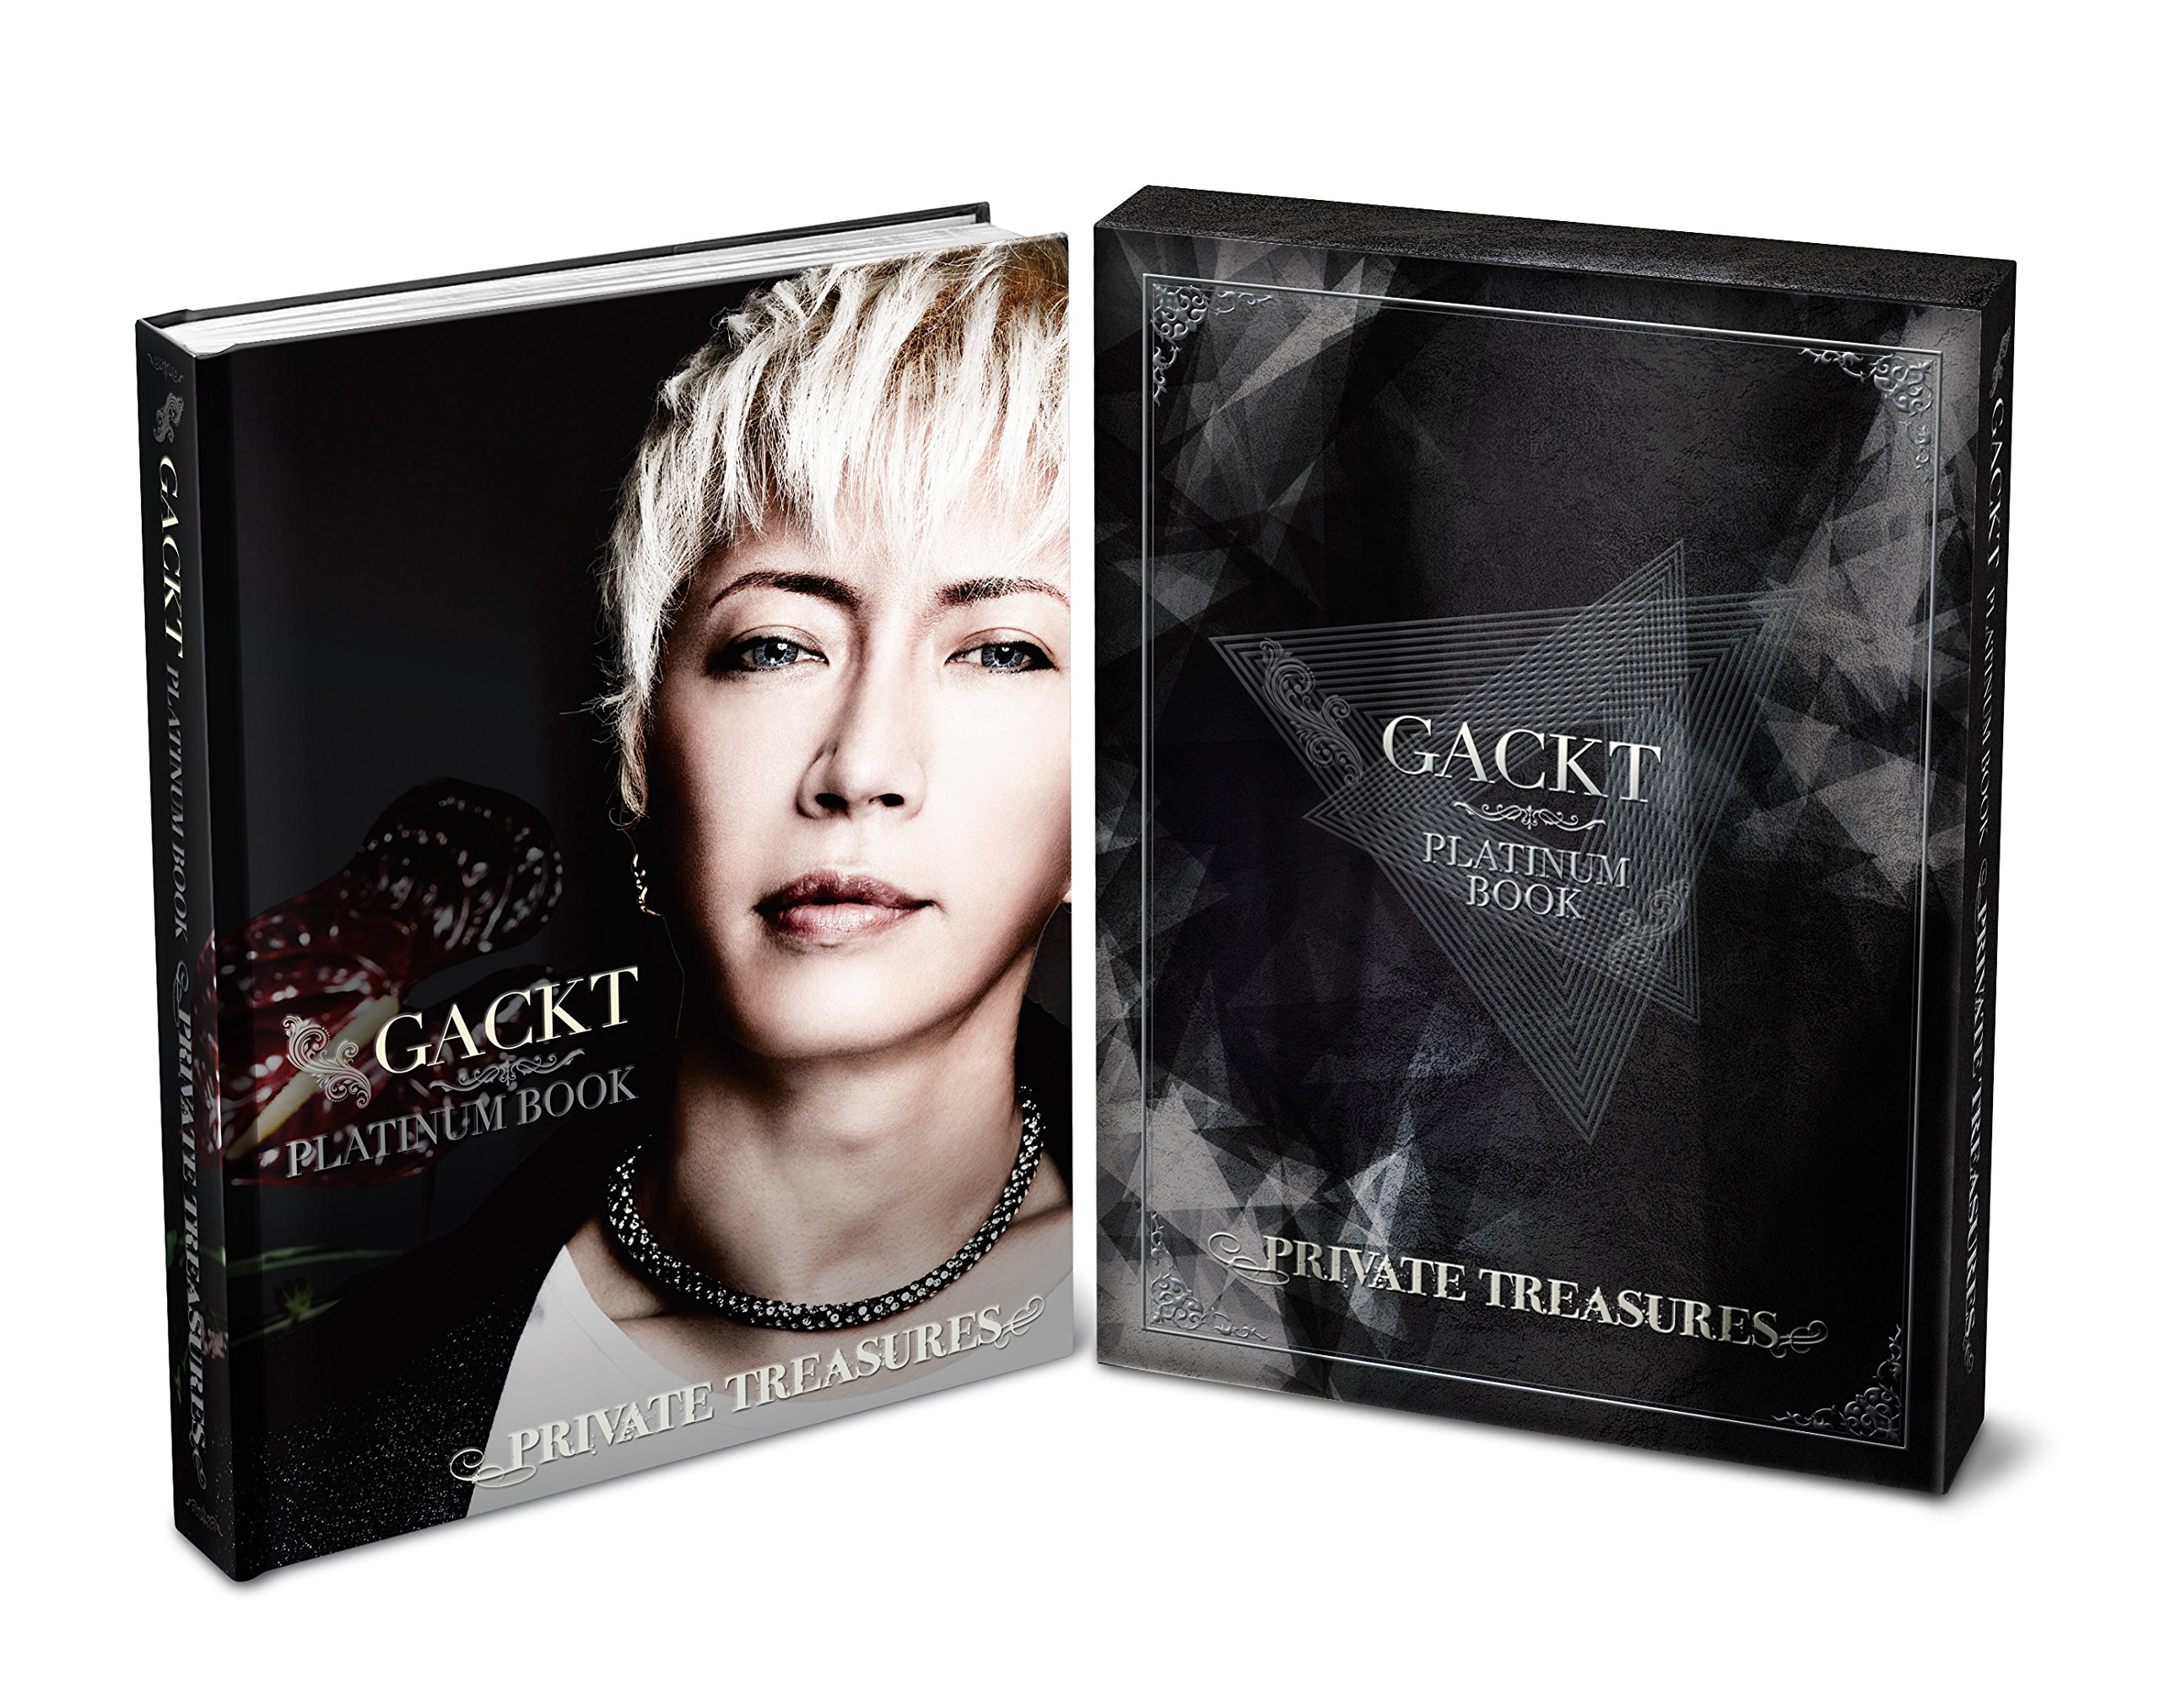 Gackt's premium platinum book called Private Treasures